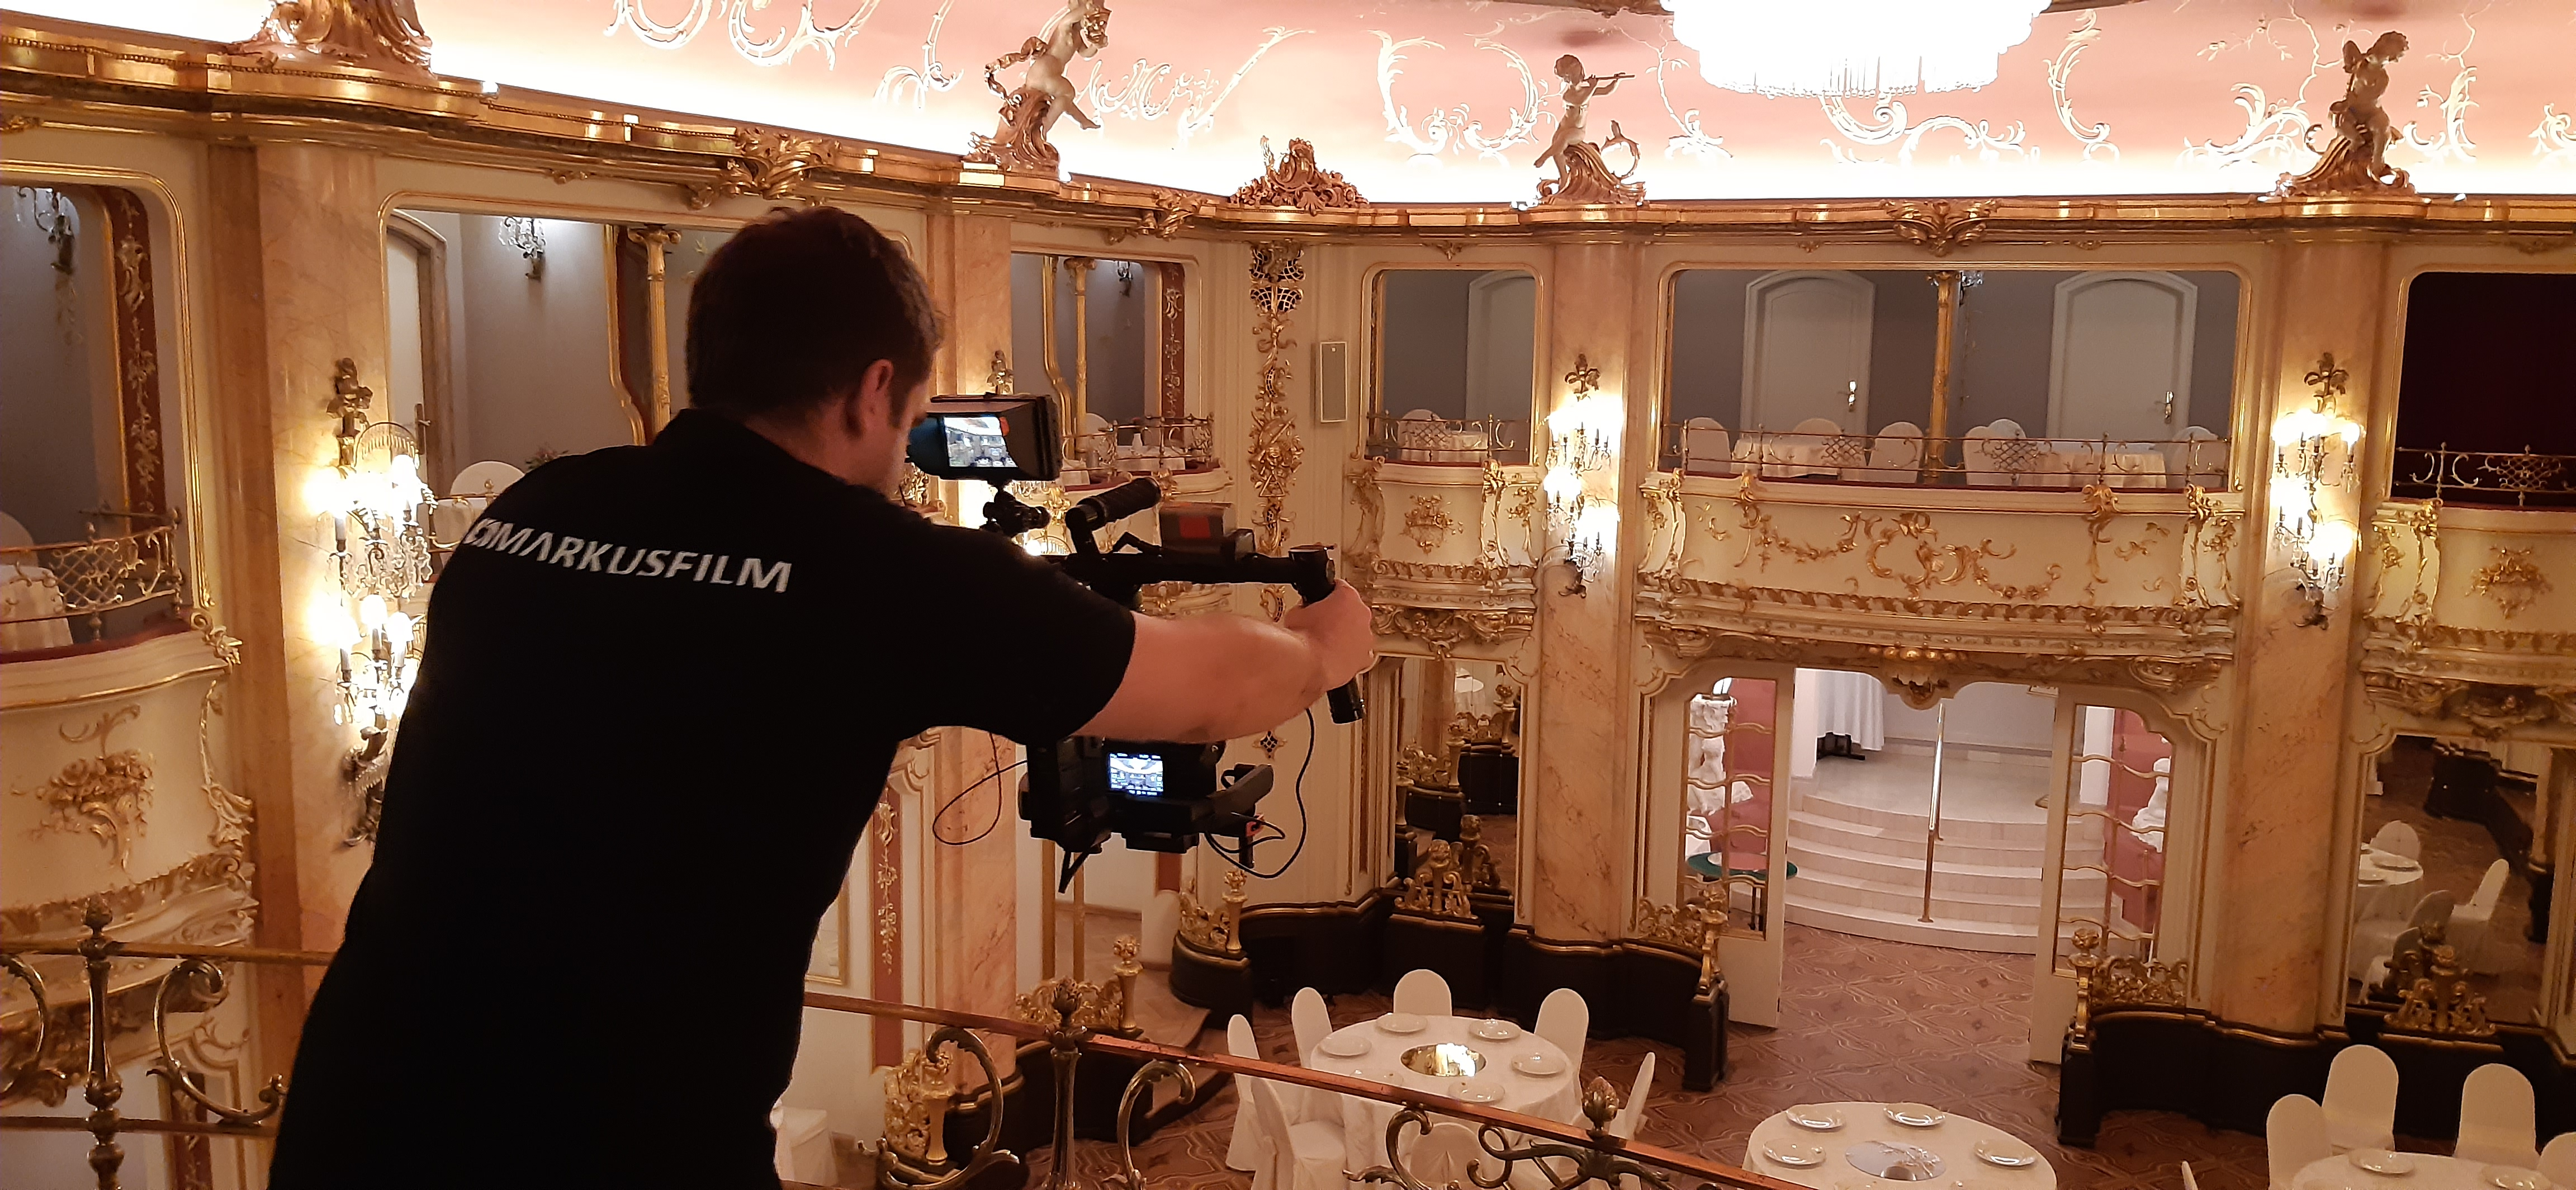 How to film a hotel video?